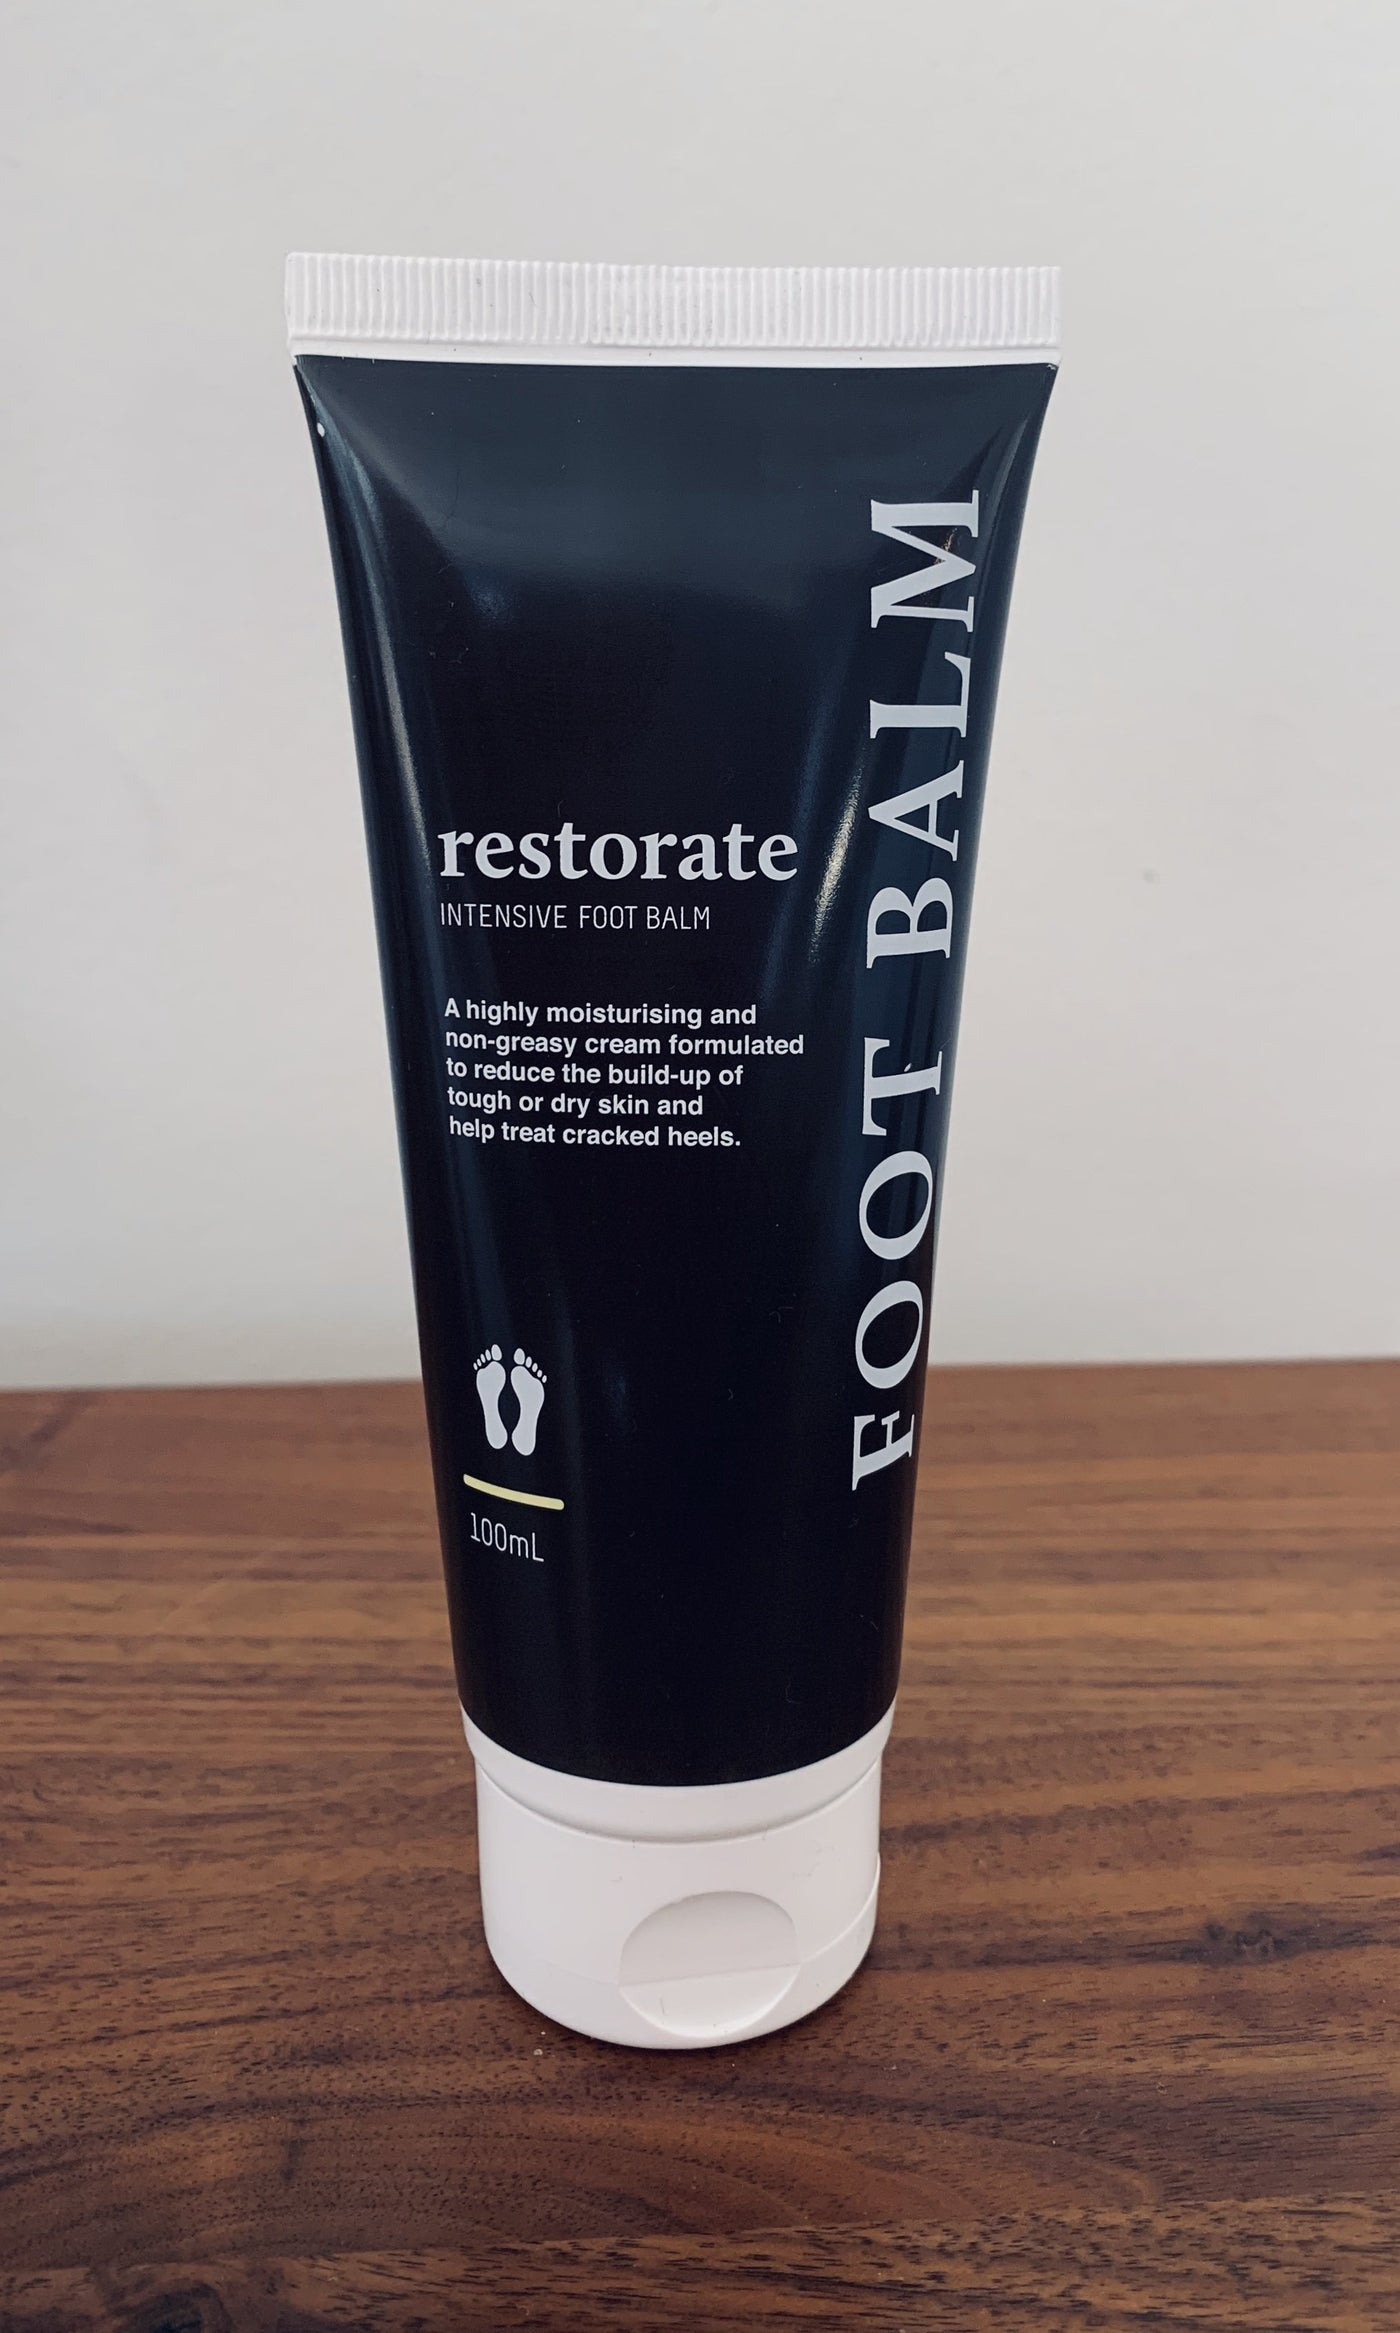 Restorate Intensive Foot Balm